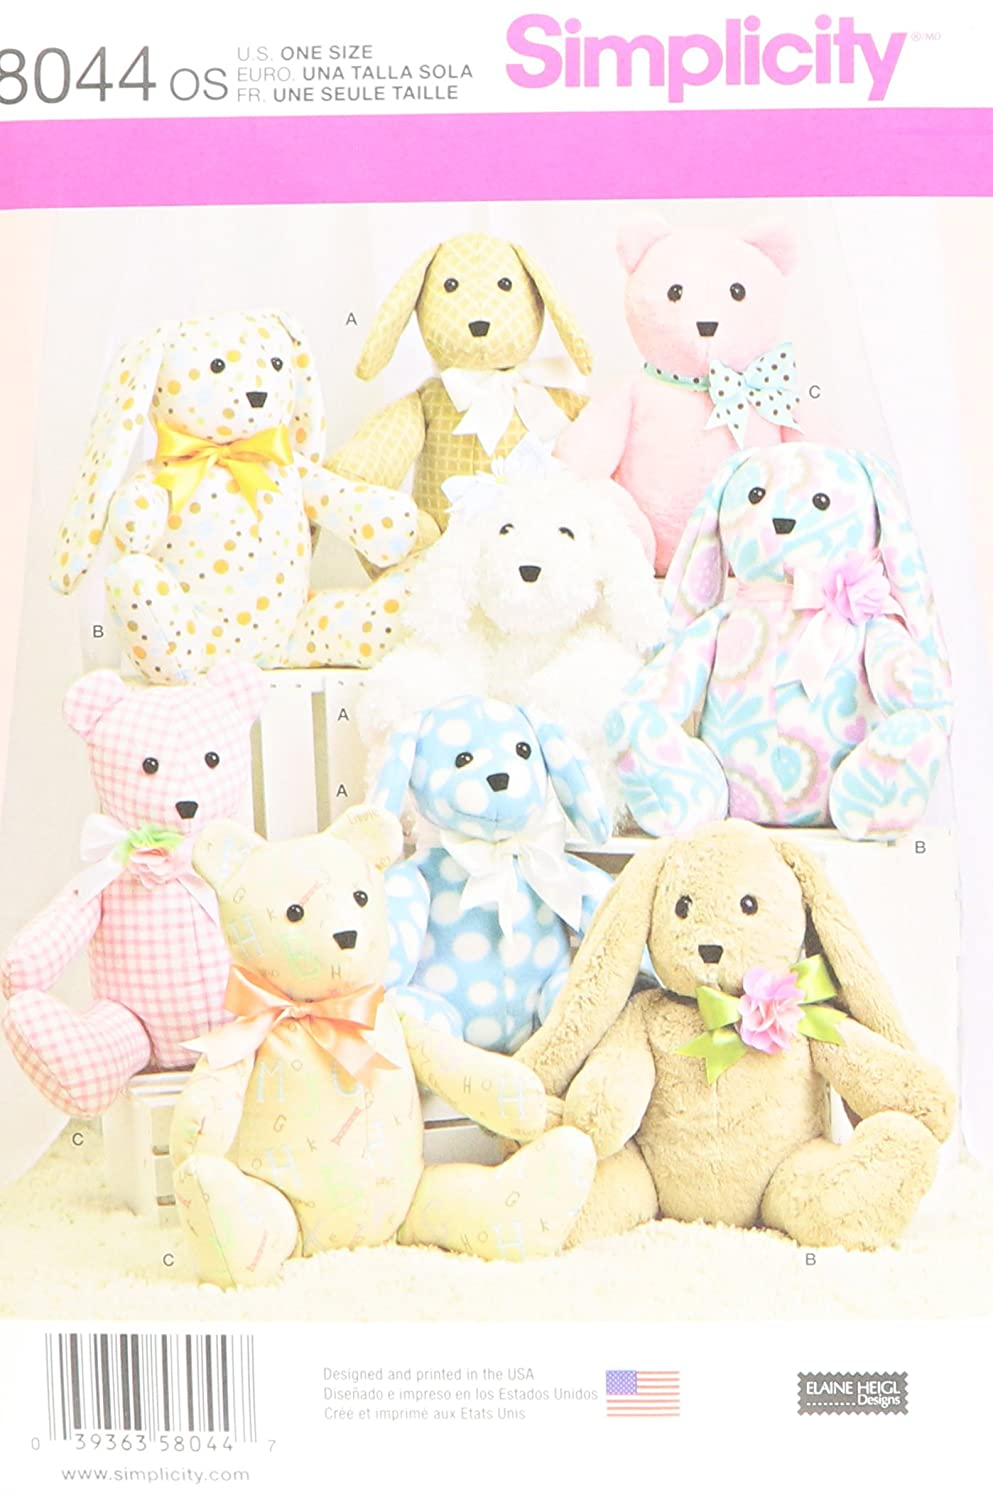 Simplicity Creative Patterns US8044OS Simplicity Patterns Two-Pattern Piece Stuffed Animals Size: Os (One Size), 8044 OUTLOOK GROUP CORP